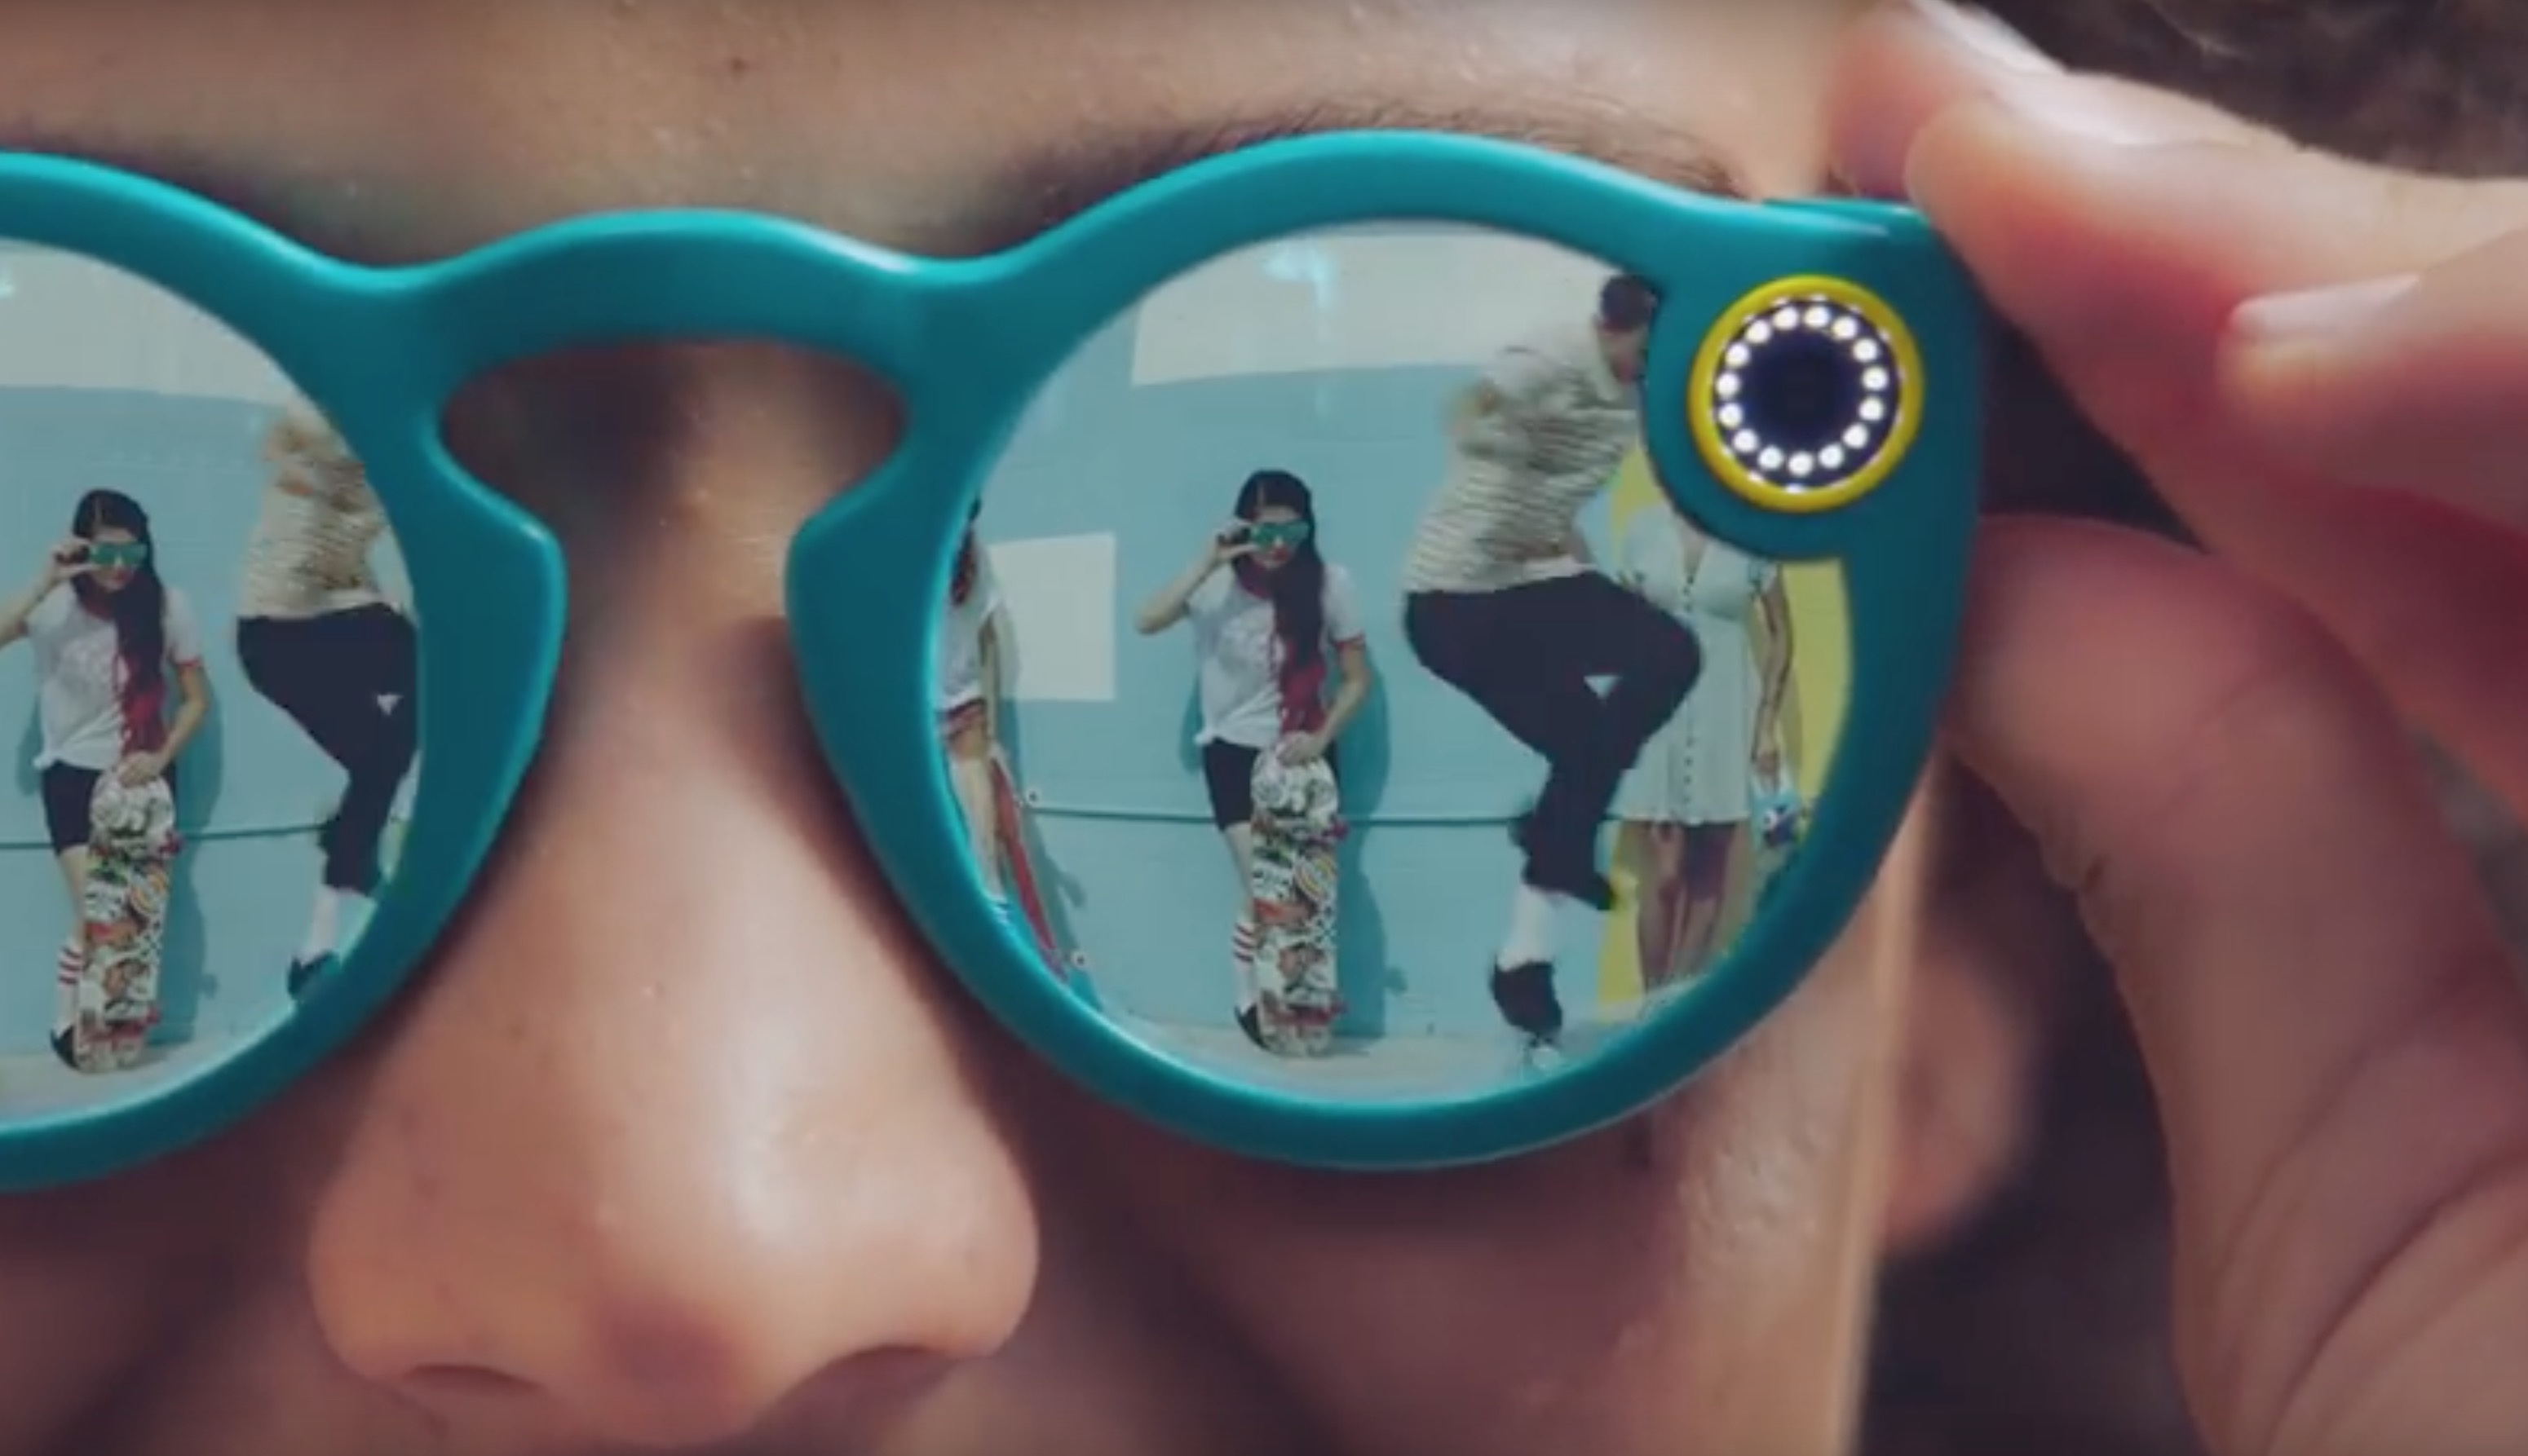 Snapchat Spectacles occhiali smart per video